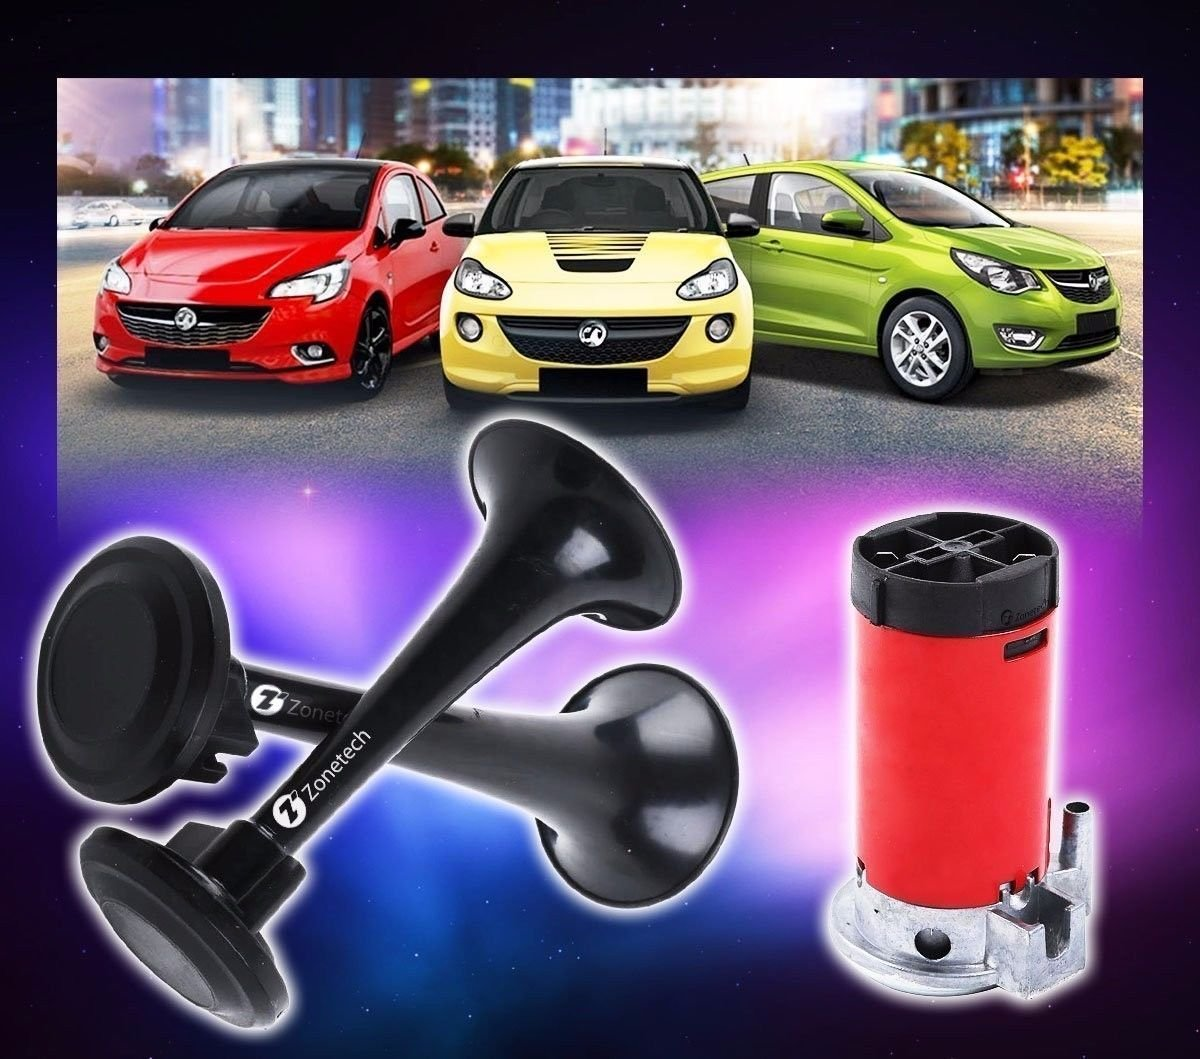 House Deals Air Horn Dual Trumpet Train Car Kit Compressor Loud and Powerfull Premium Quality Affordable 115DB Truck Loud 12v